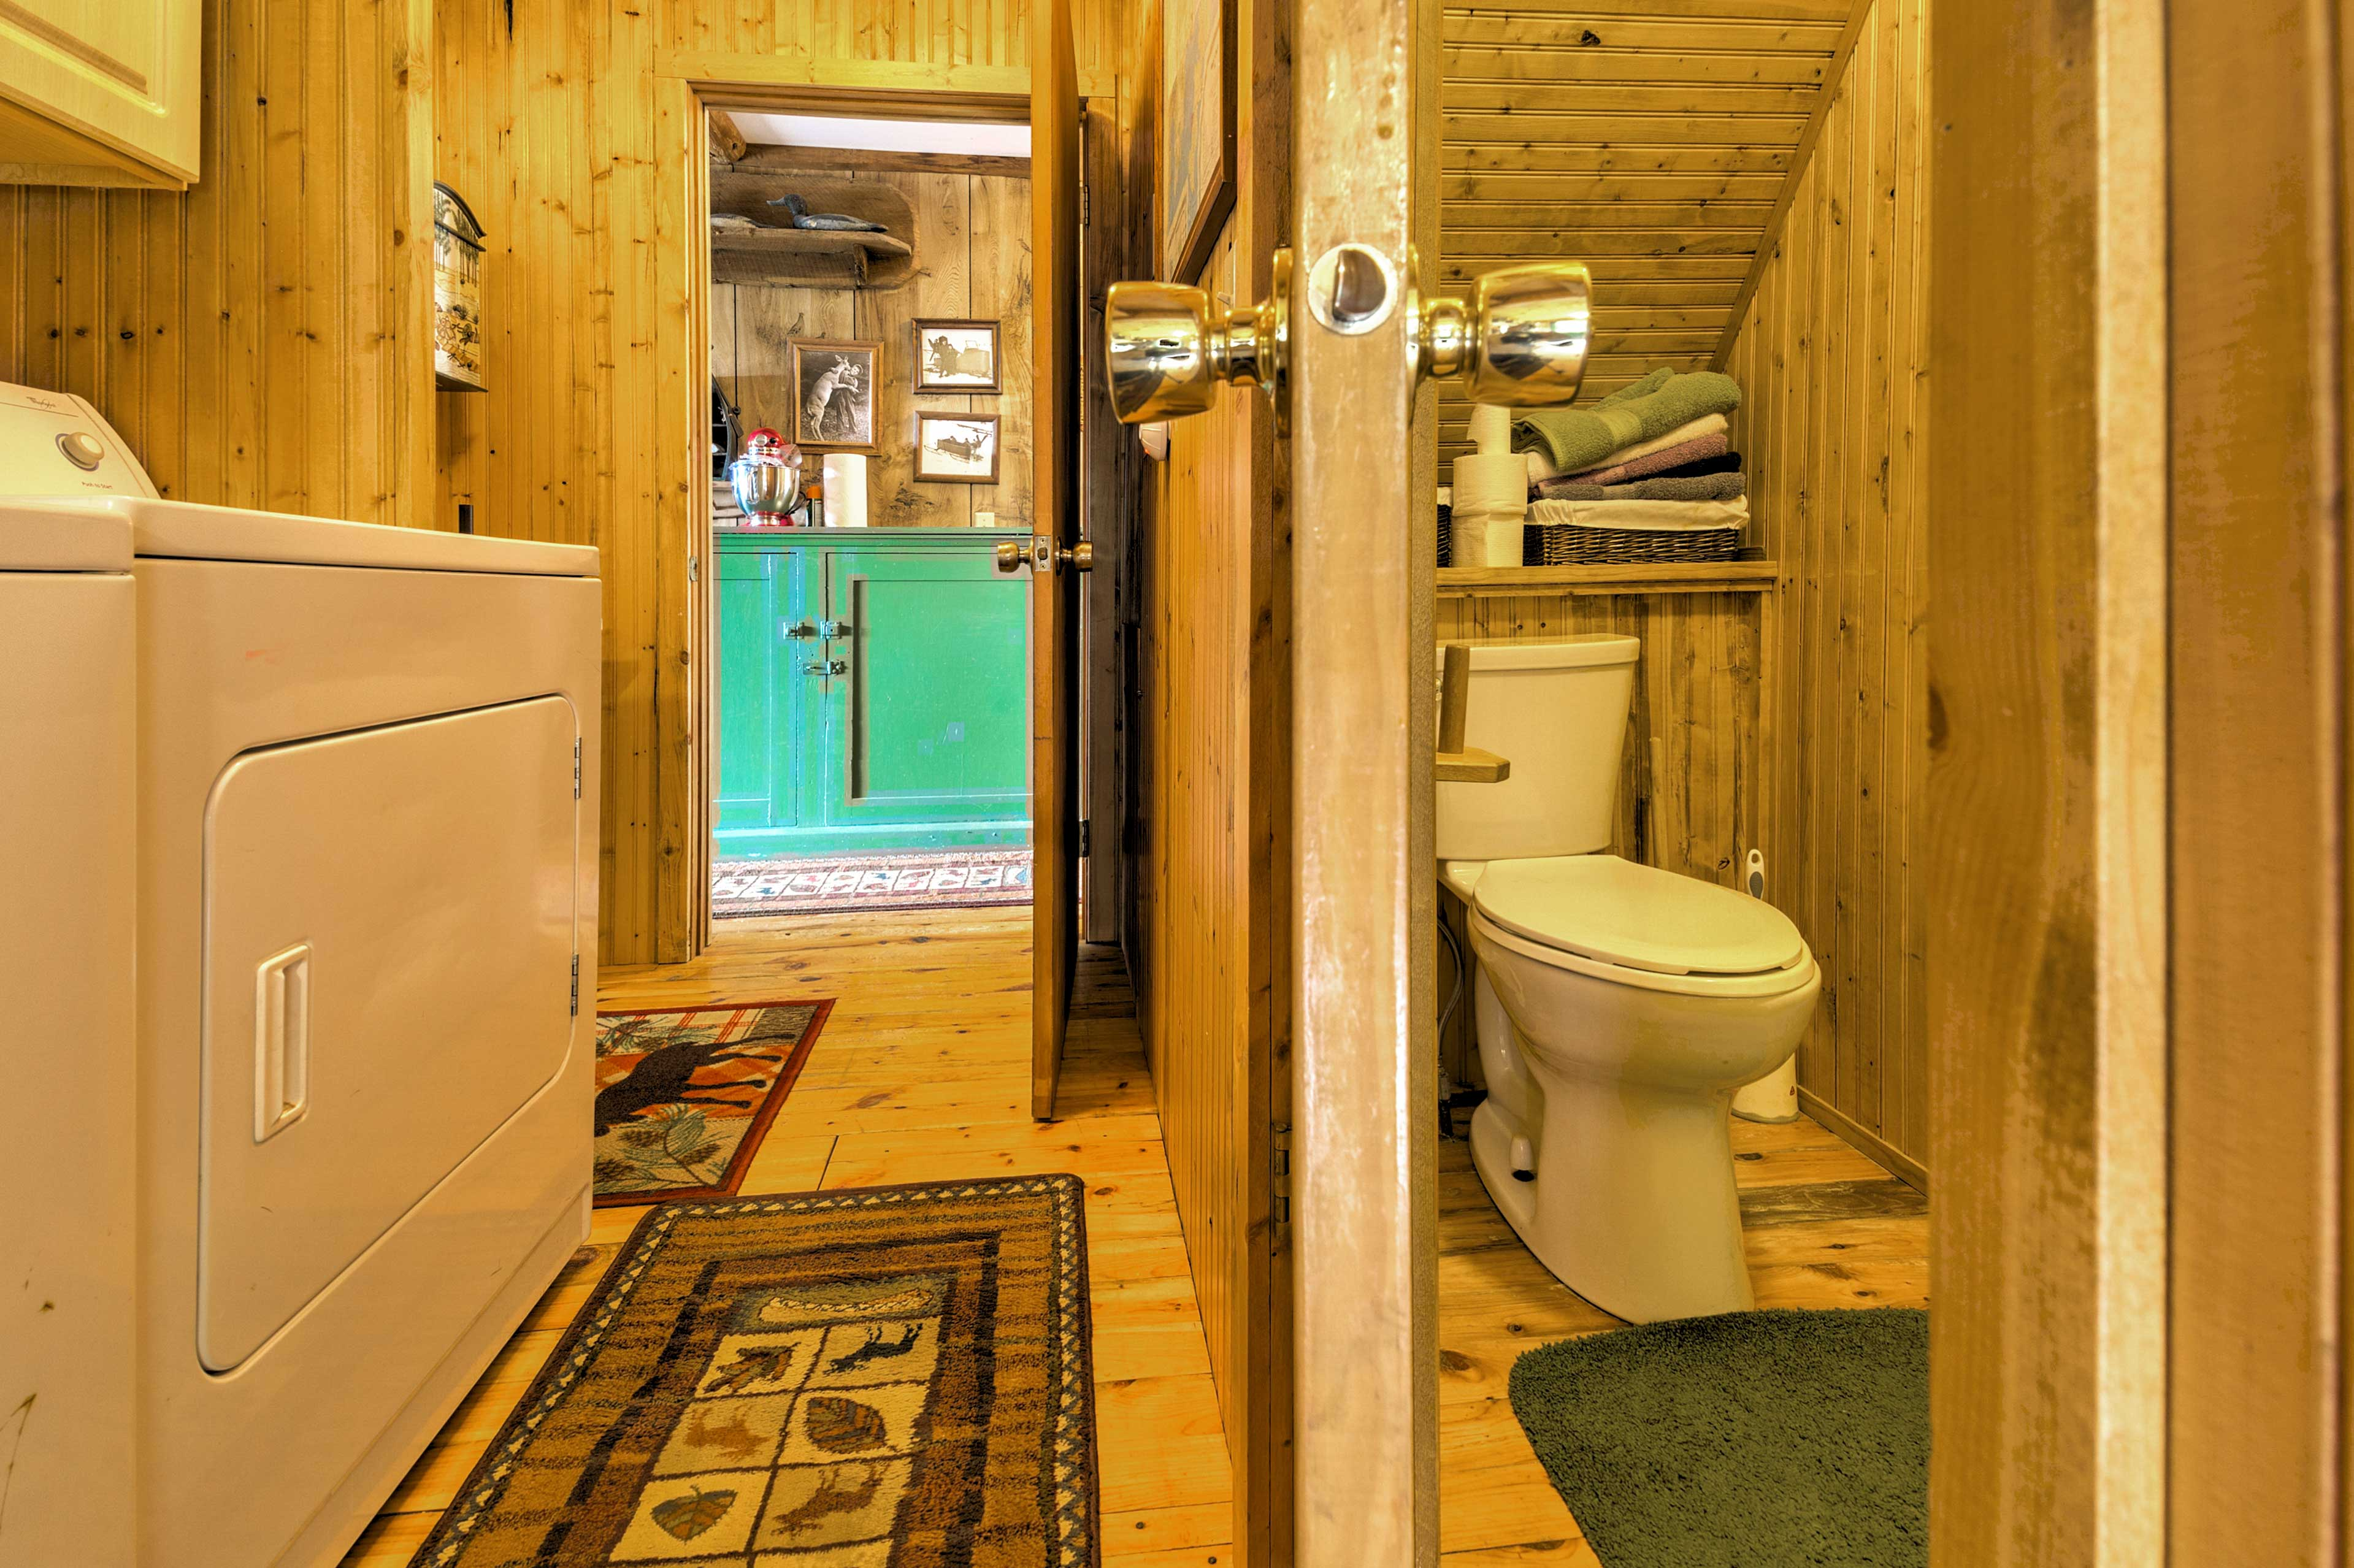 The second bathroom is located right off the kitchen.